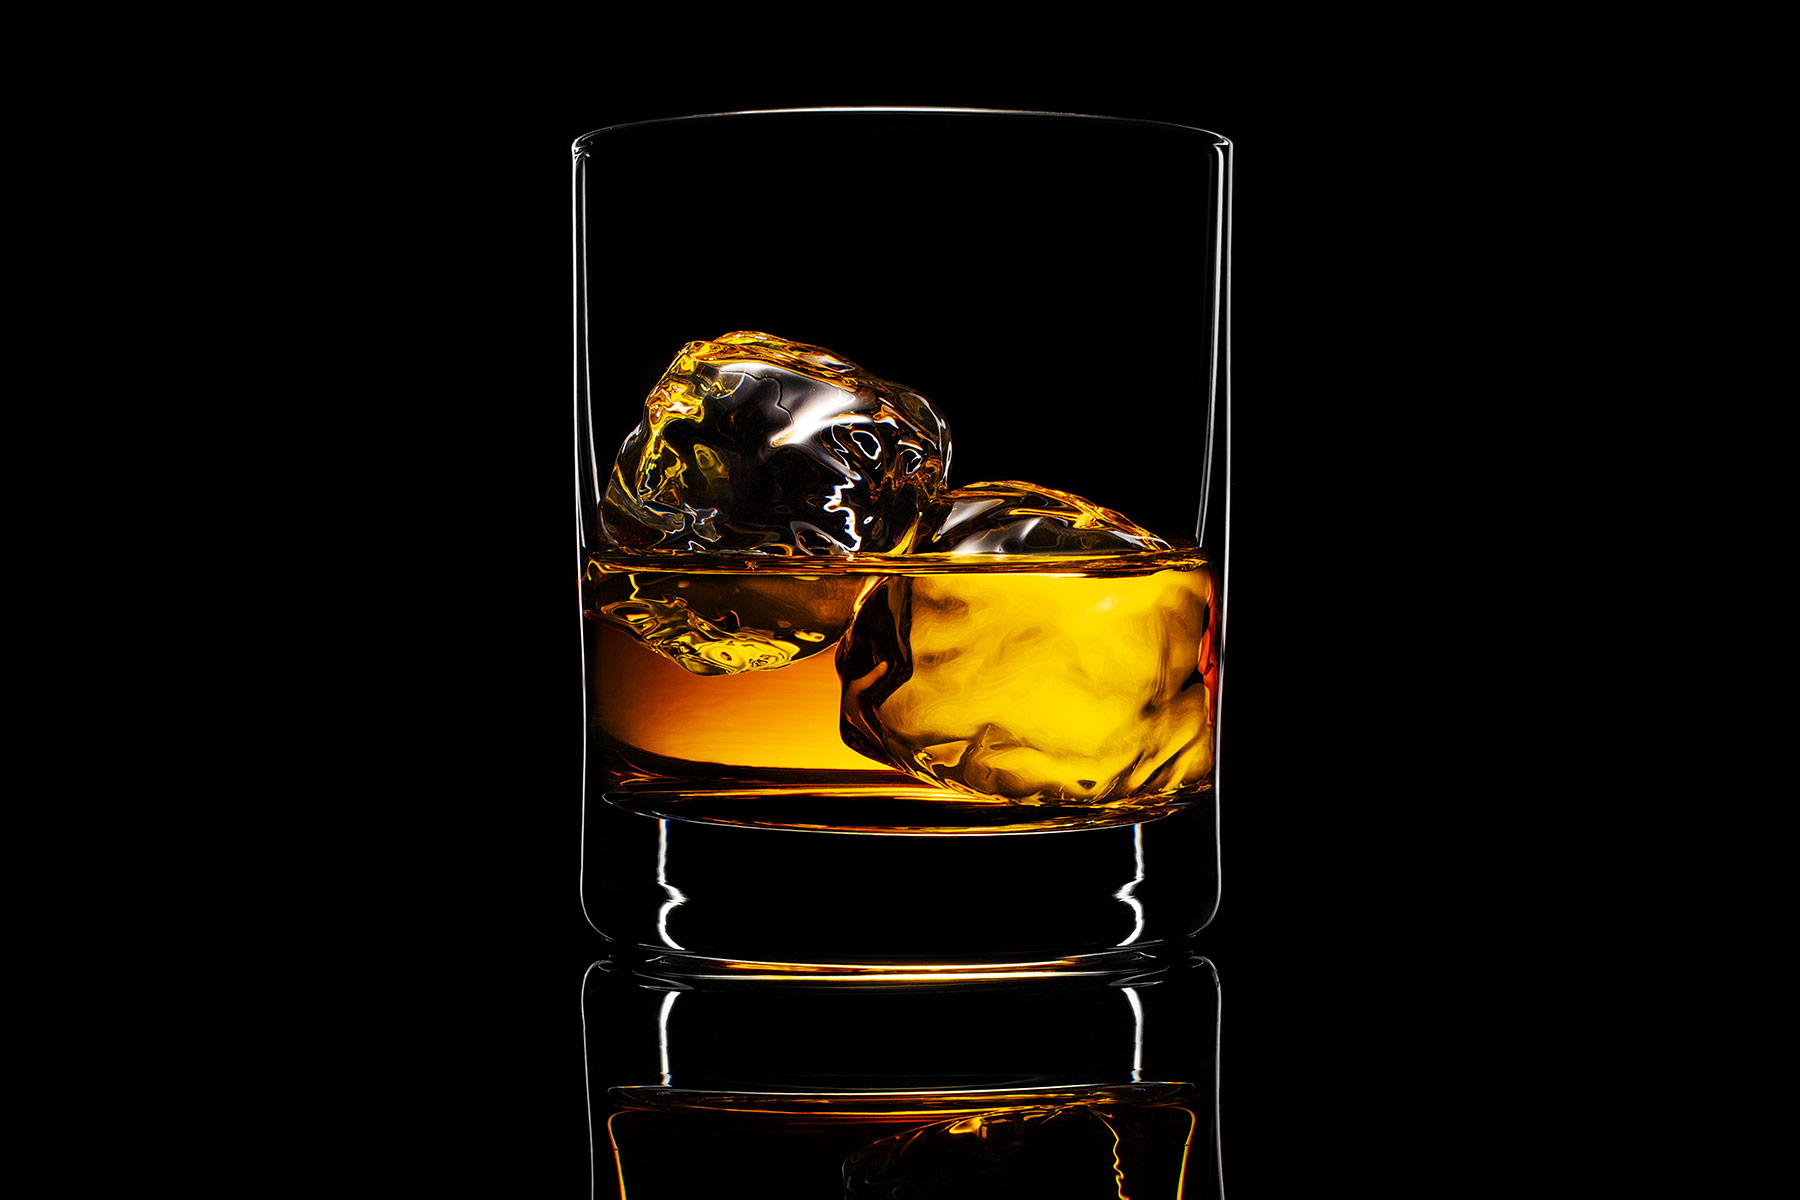 Whiskey in a glass | Dovis Bird Agency Reps